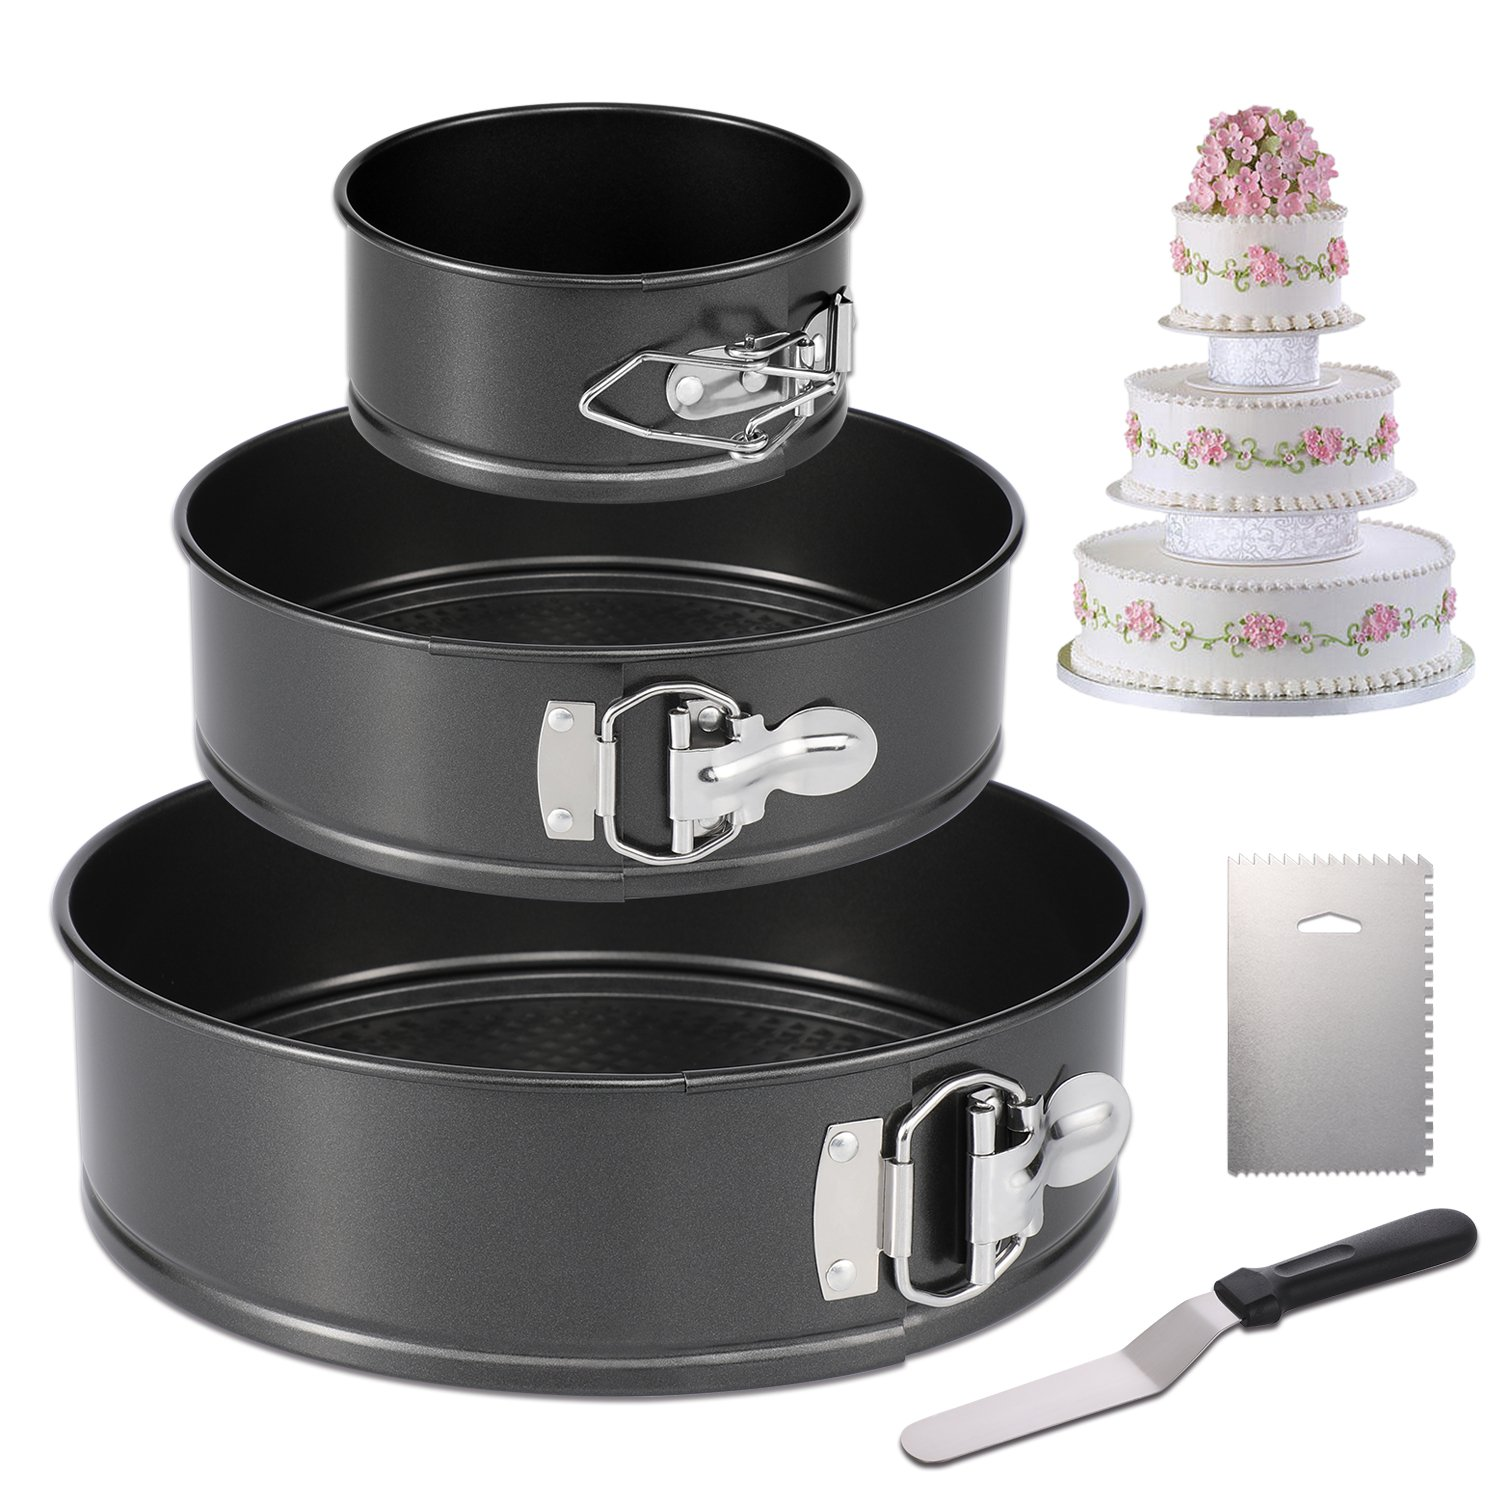 Hiware Springform Pan Set of 3 Non-stick Cheesecake Pan, Leakproof Round Cake Pan Set Includes 3 Piece 4'' 7'' 9'' Springform Pan, Icing Spatula and Icing Smoother